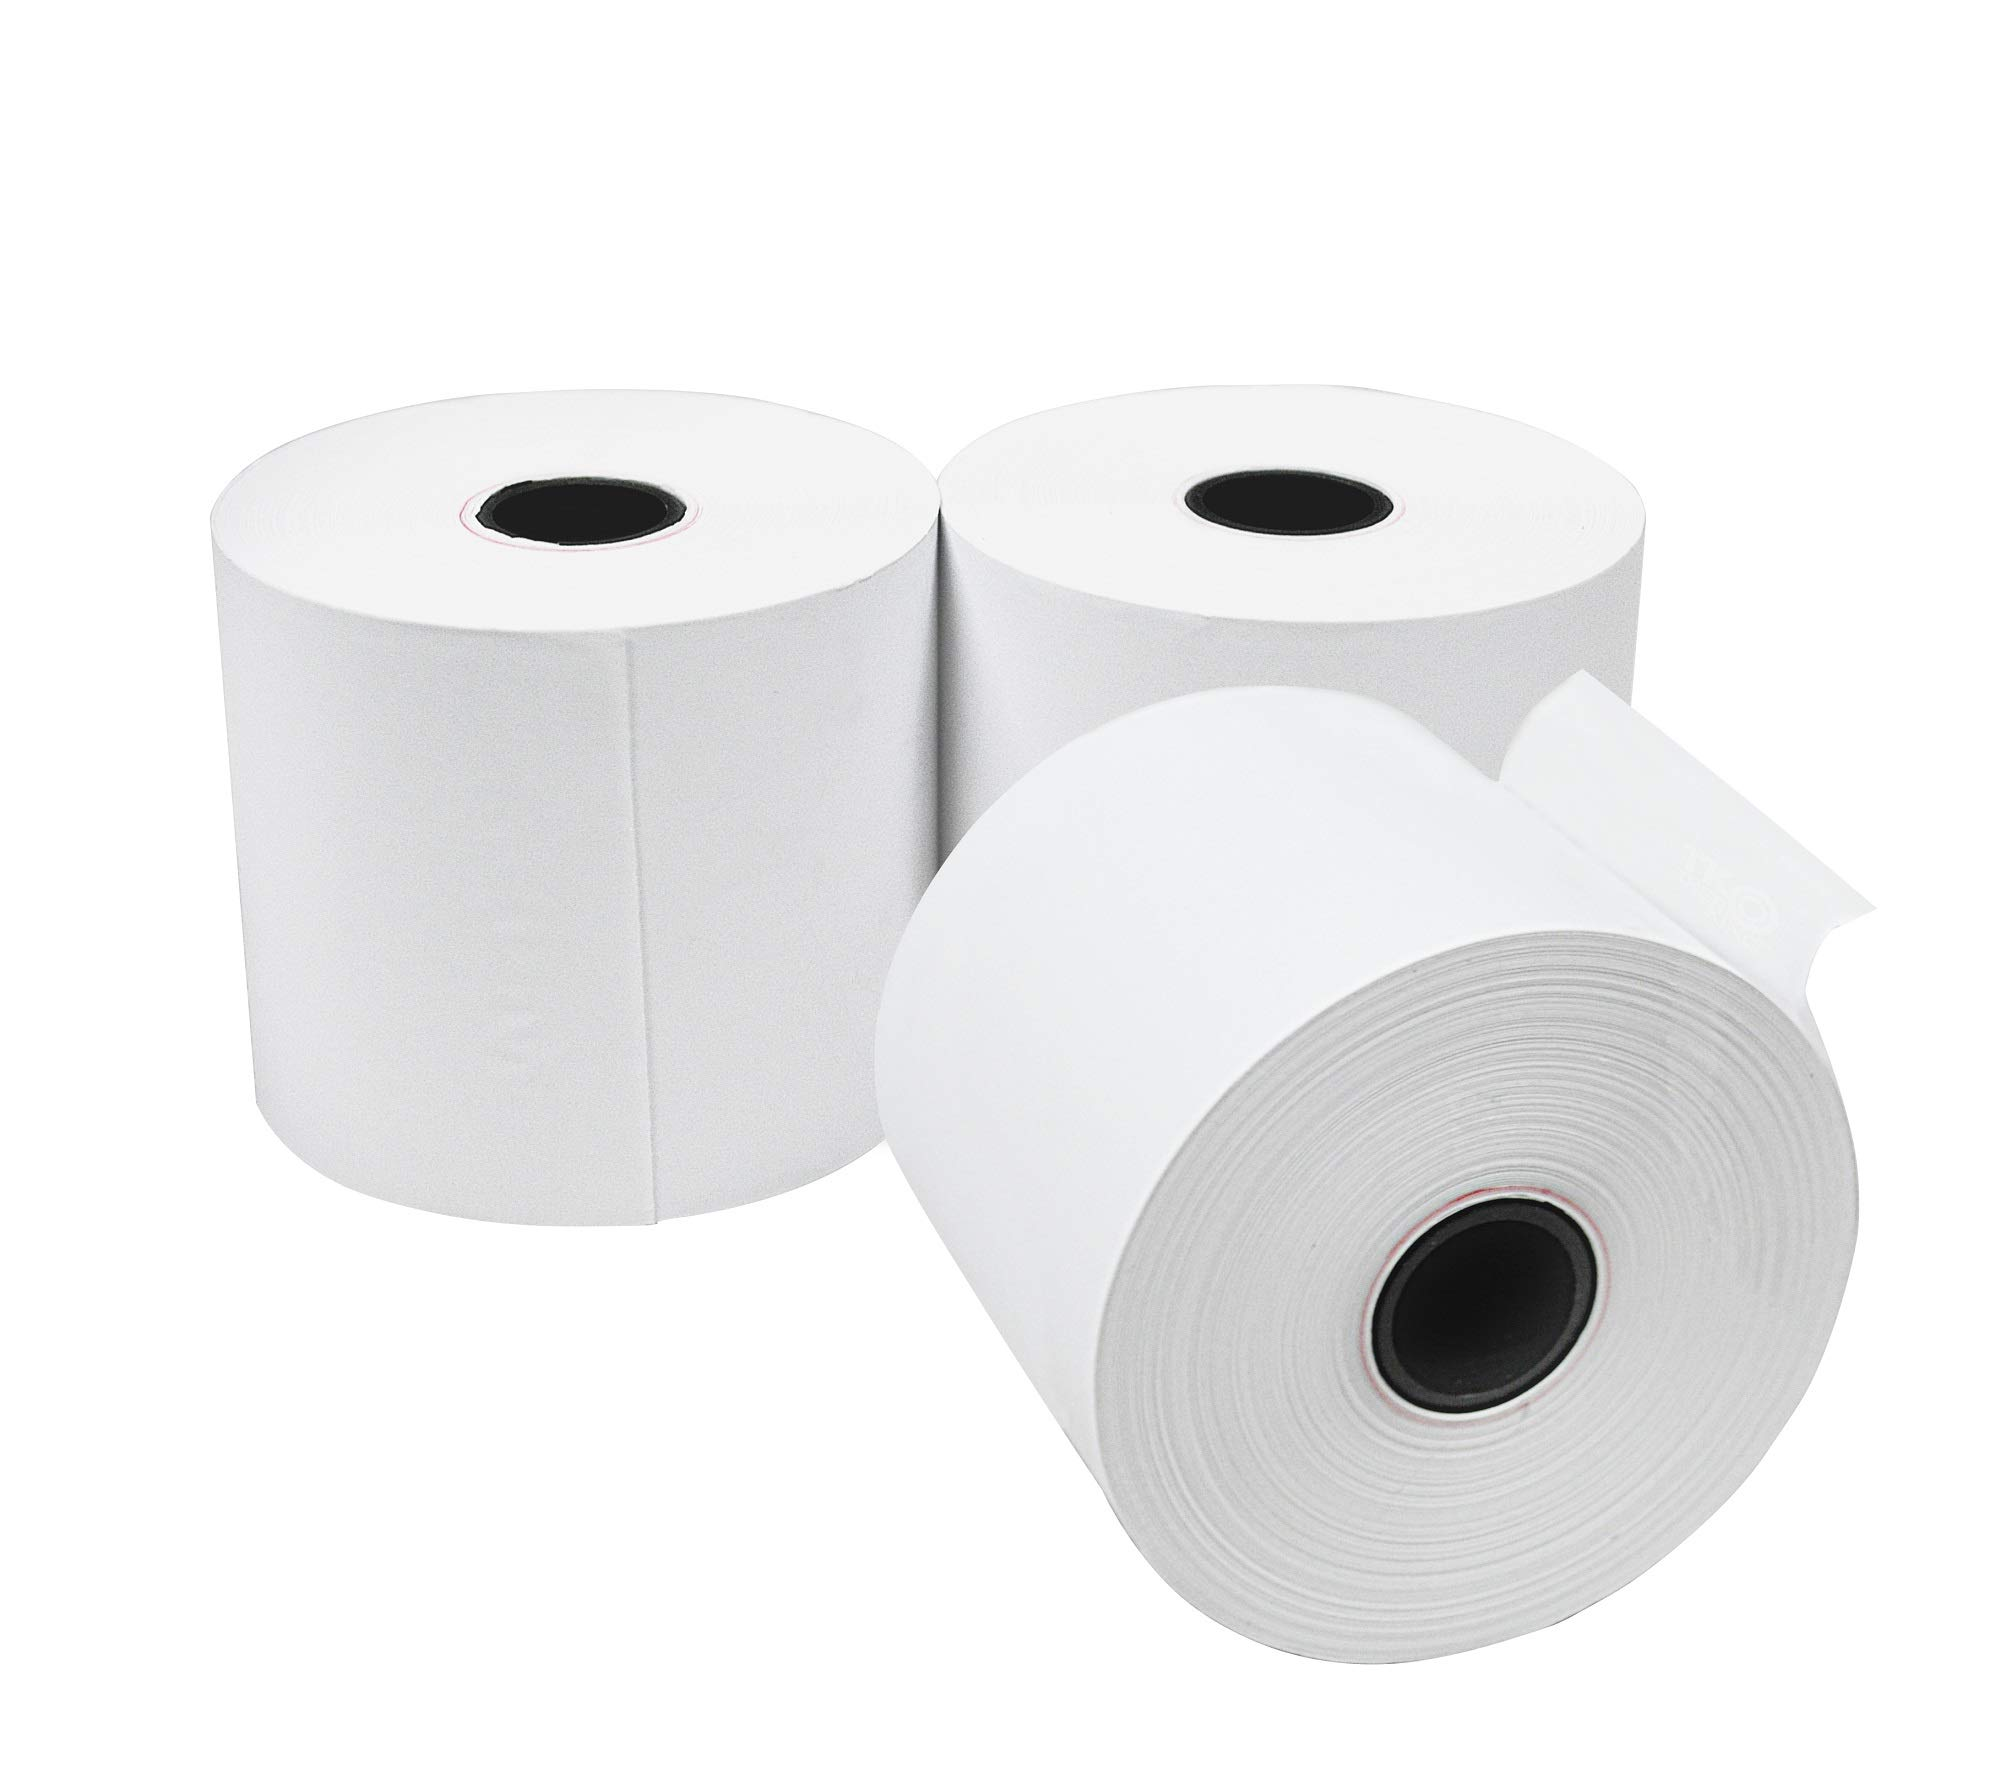 Thermal King, 2 1/4'' x 230' Thermal Paper, 50 Rolls [Thermal King Brand] by Thermal King (Image #1)